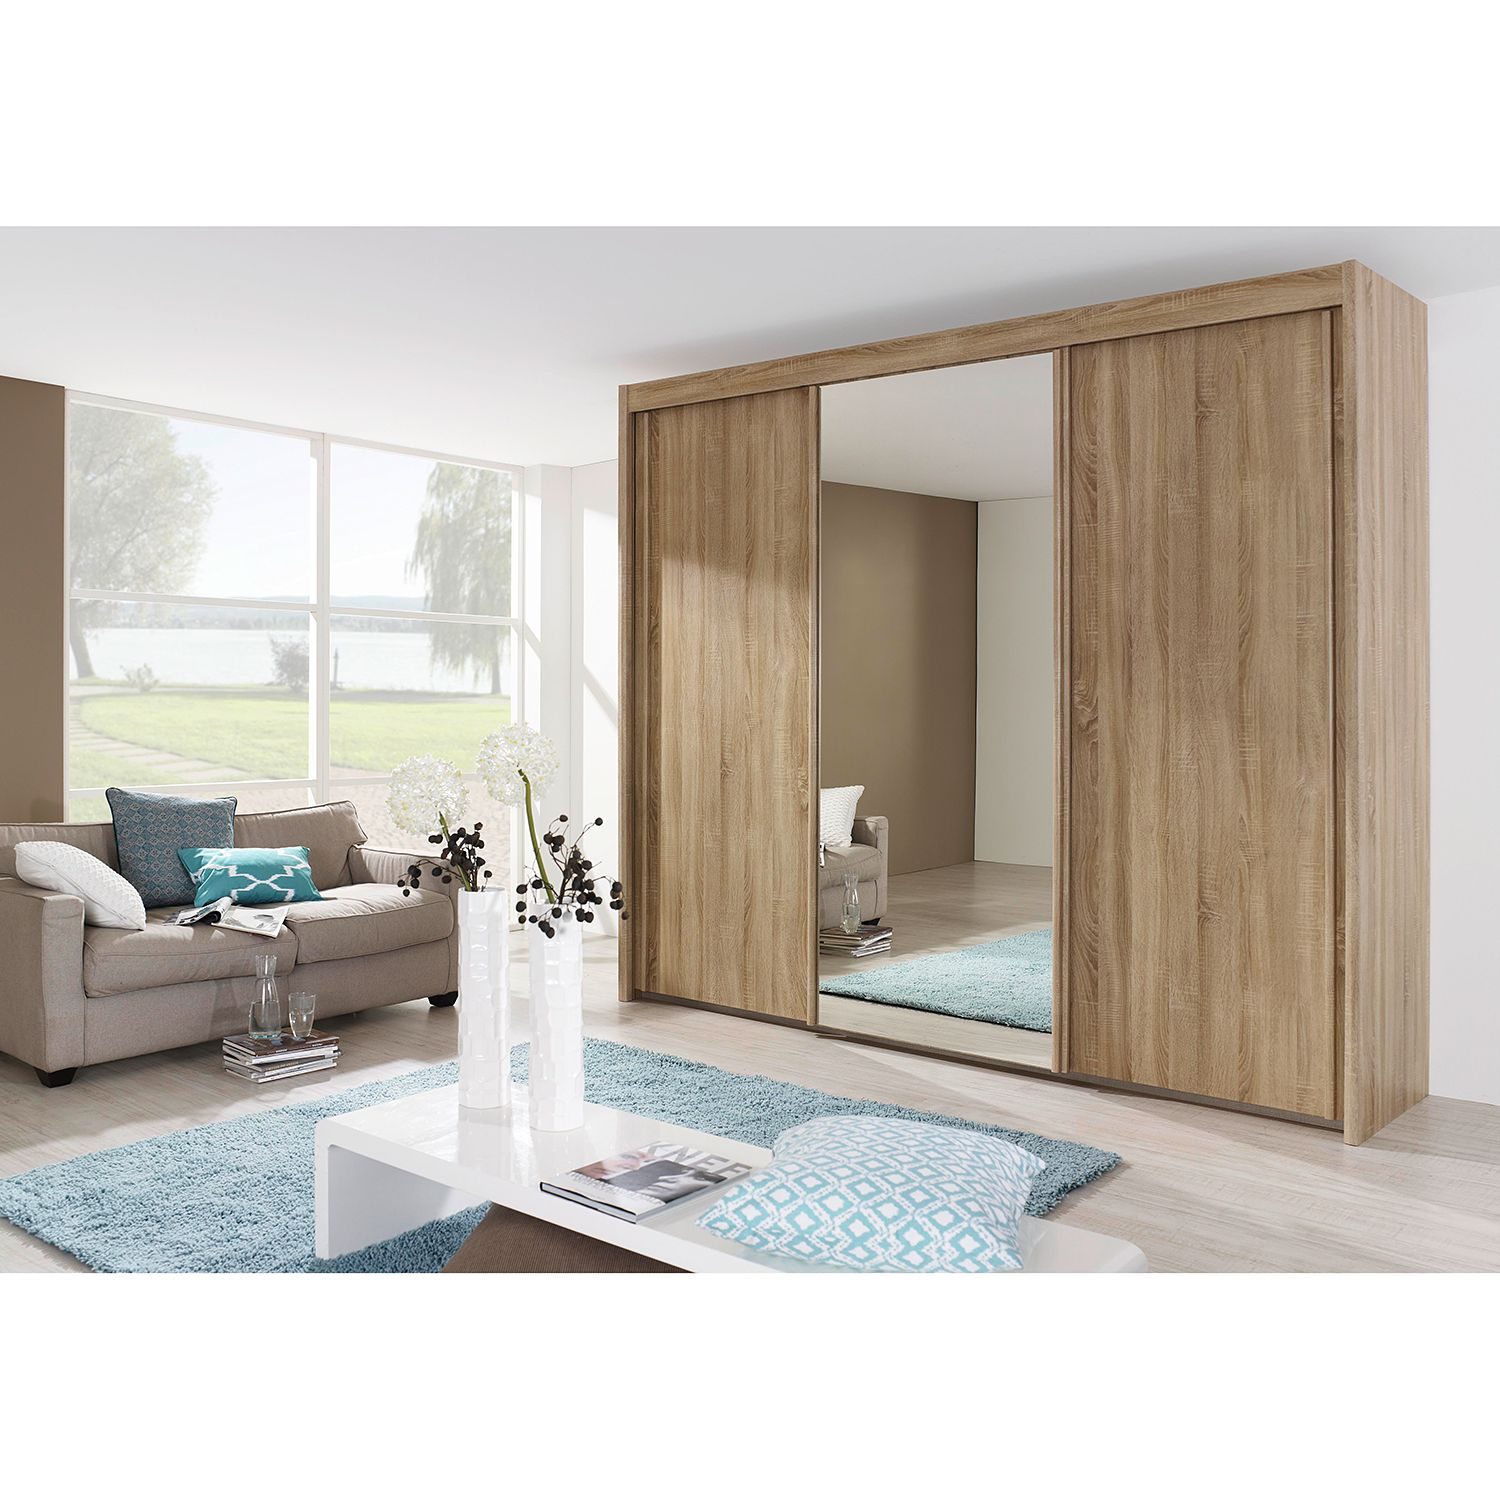 Armoire portes coulissantes Imperial II